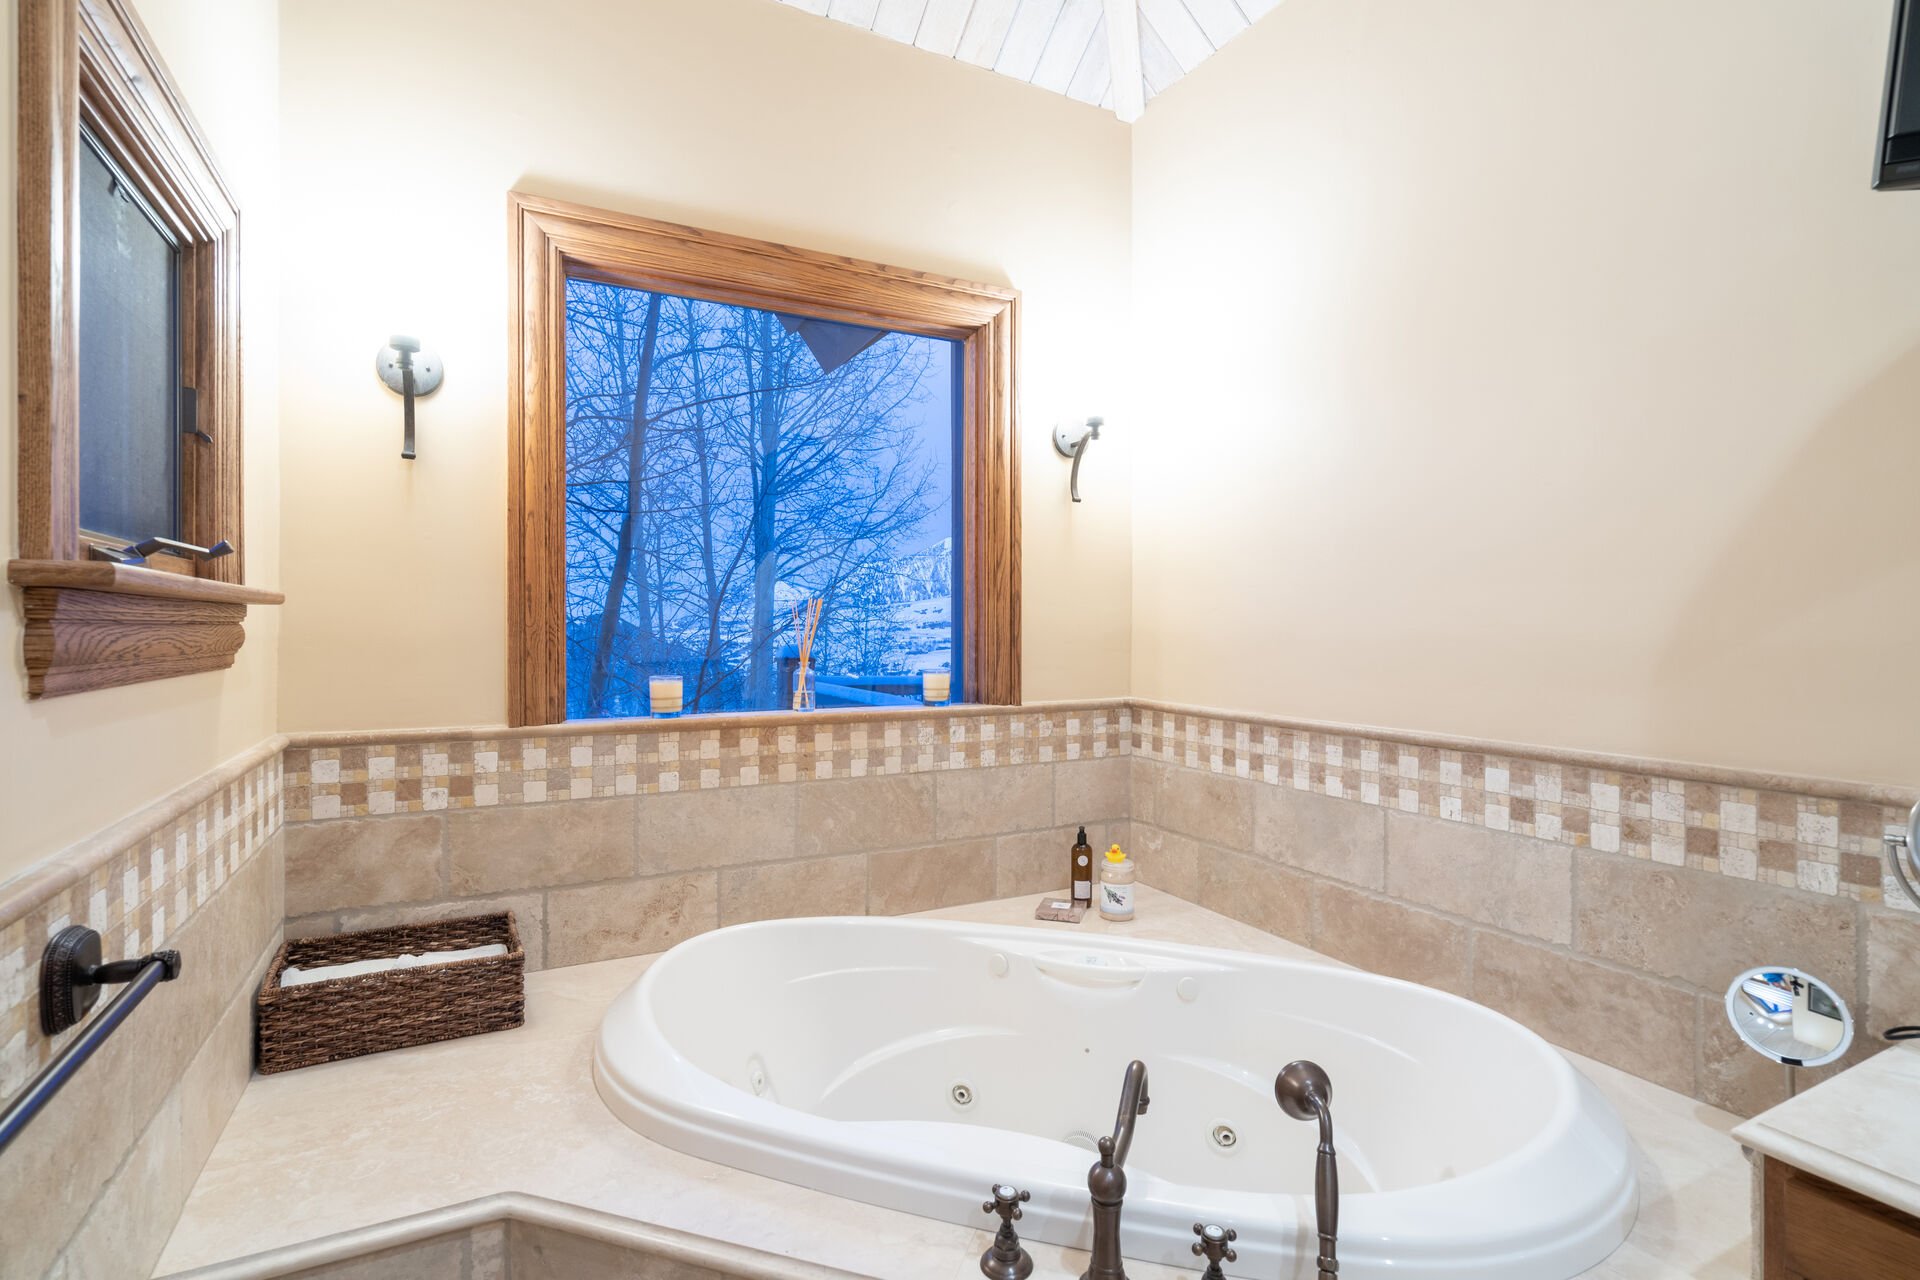 Spa tub with window above it.